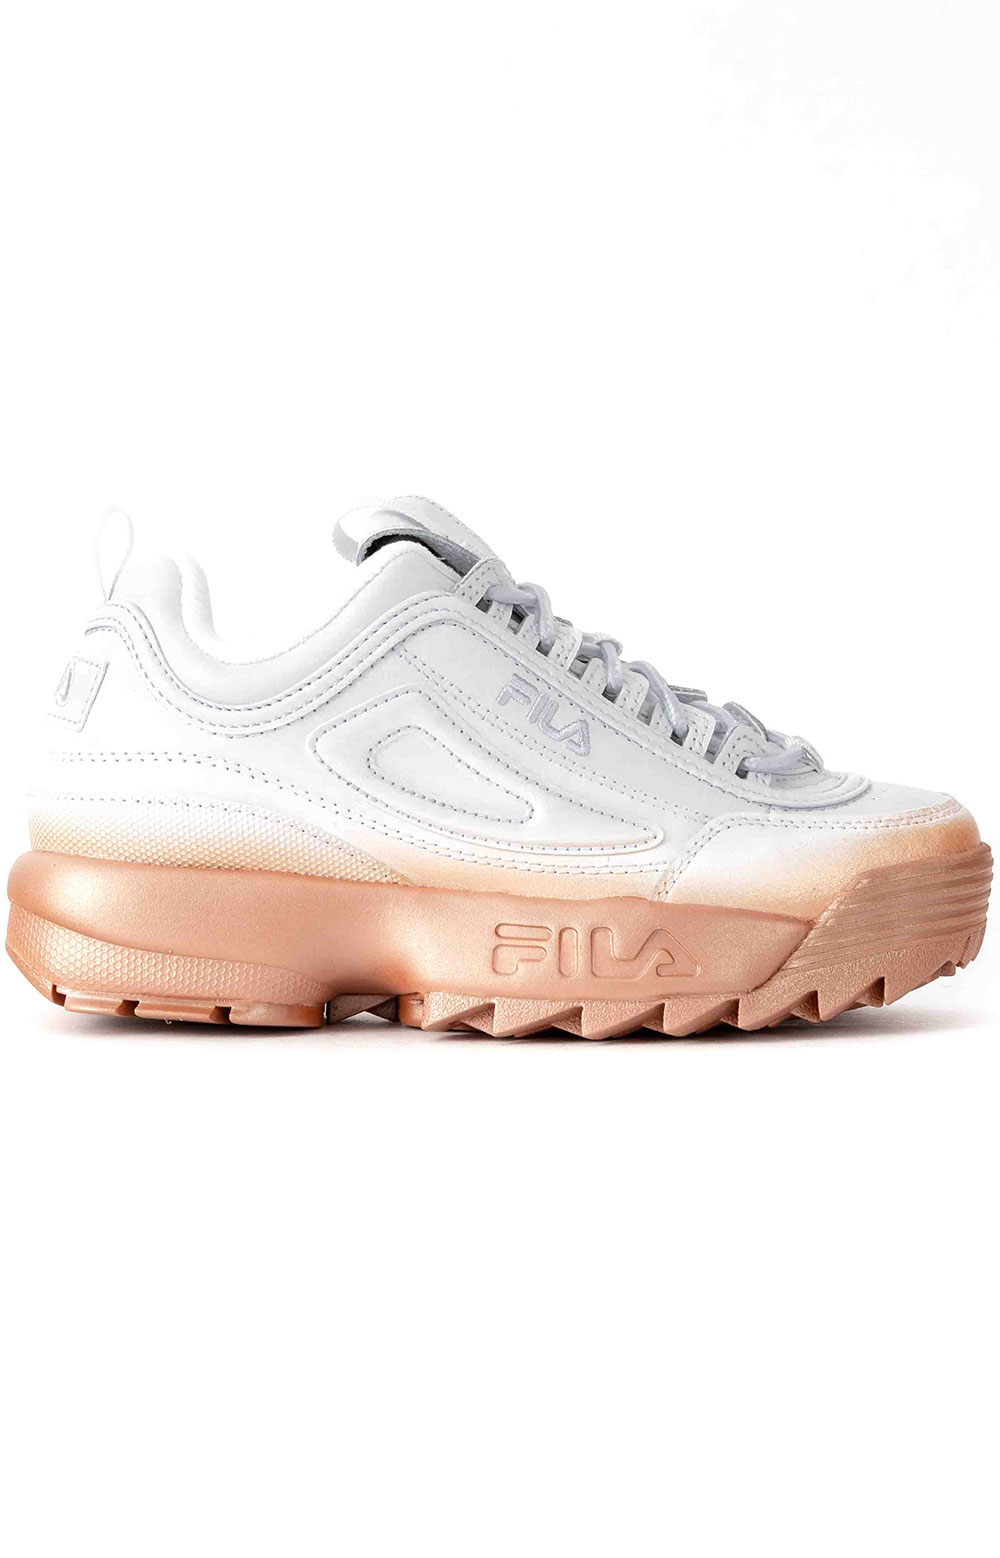 Brights Fade Disruptor II Shoes - White/Rose Gold